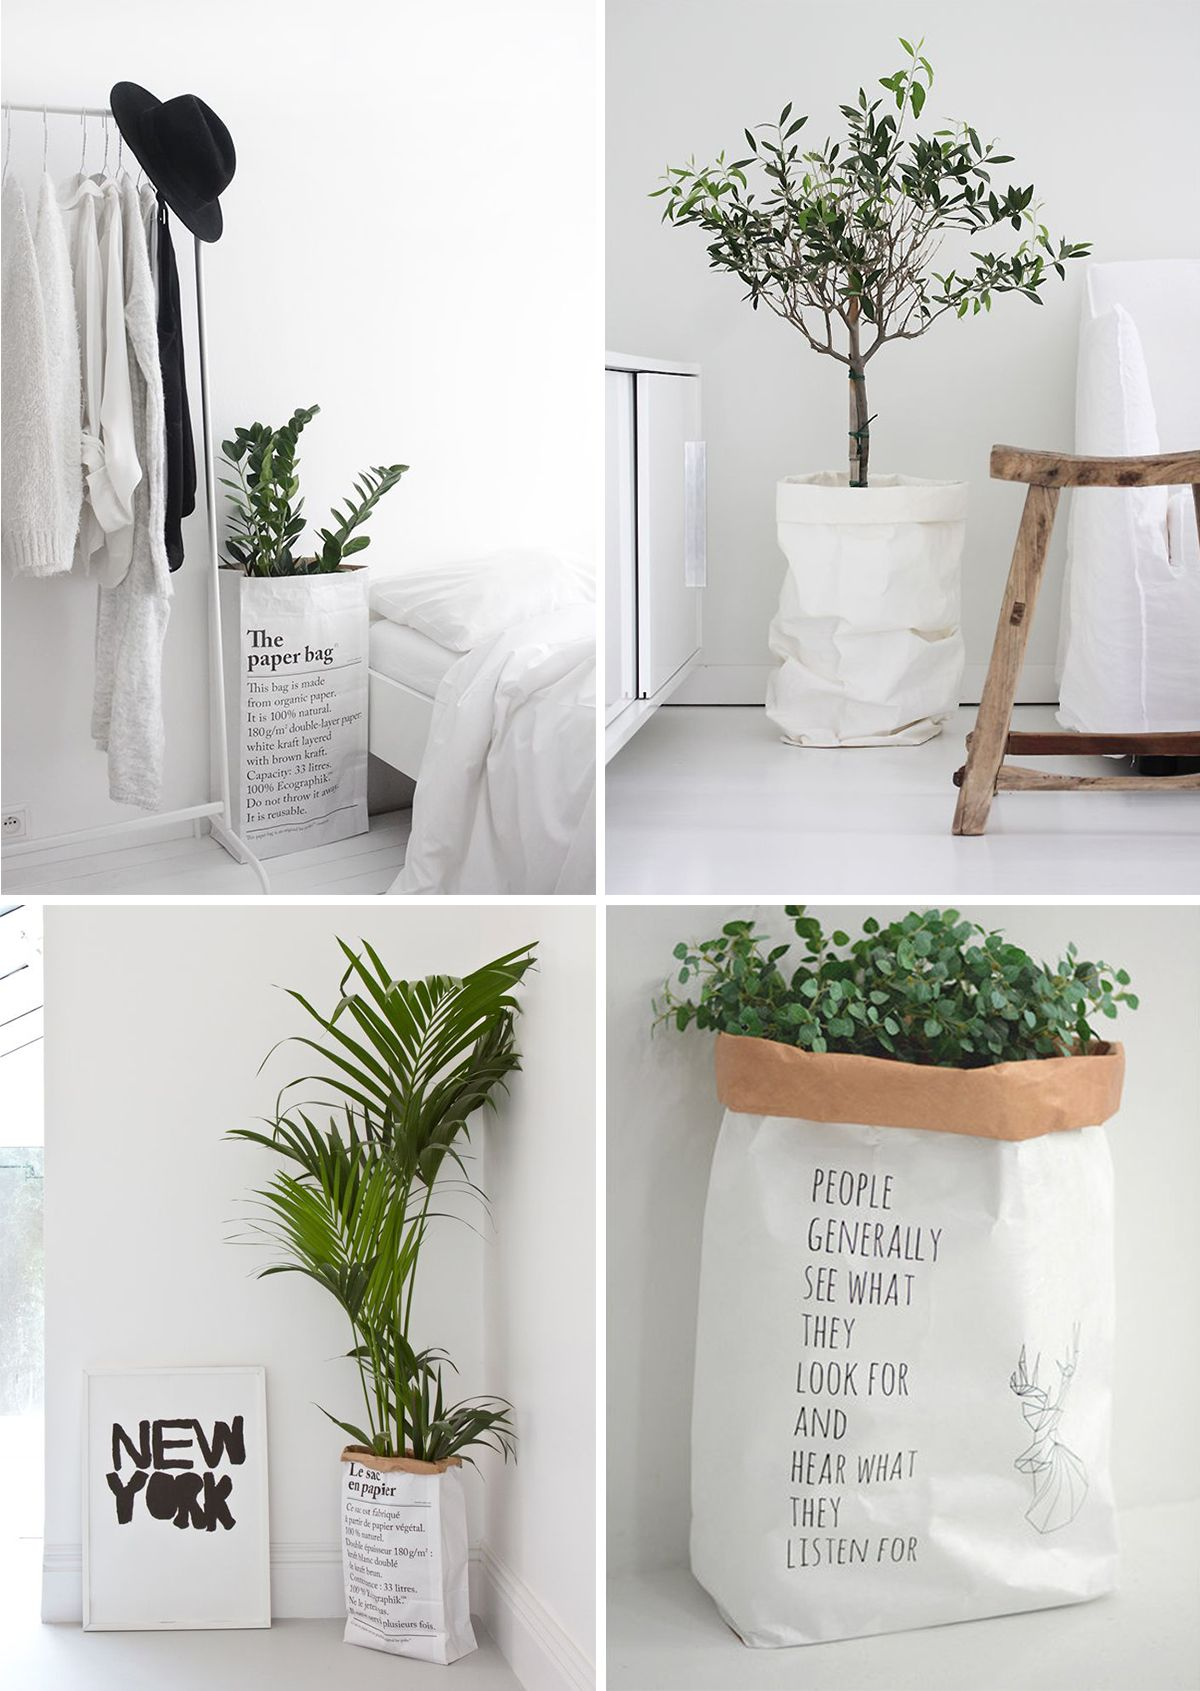 4 sac papier plantes elephantintheroom mur vegetal sac en papier deco plantes et d co maison. Black Bedroom Furniture Sets. Home Design Ideas